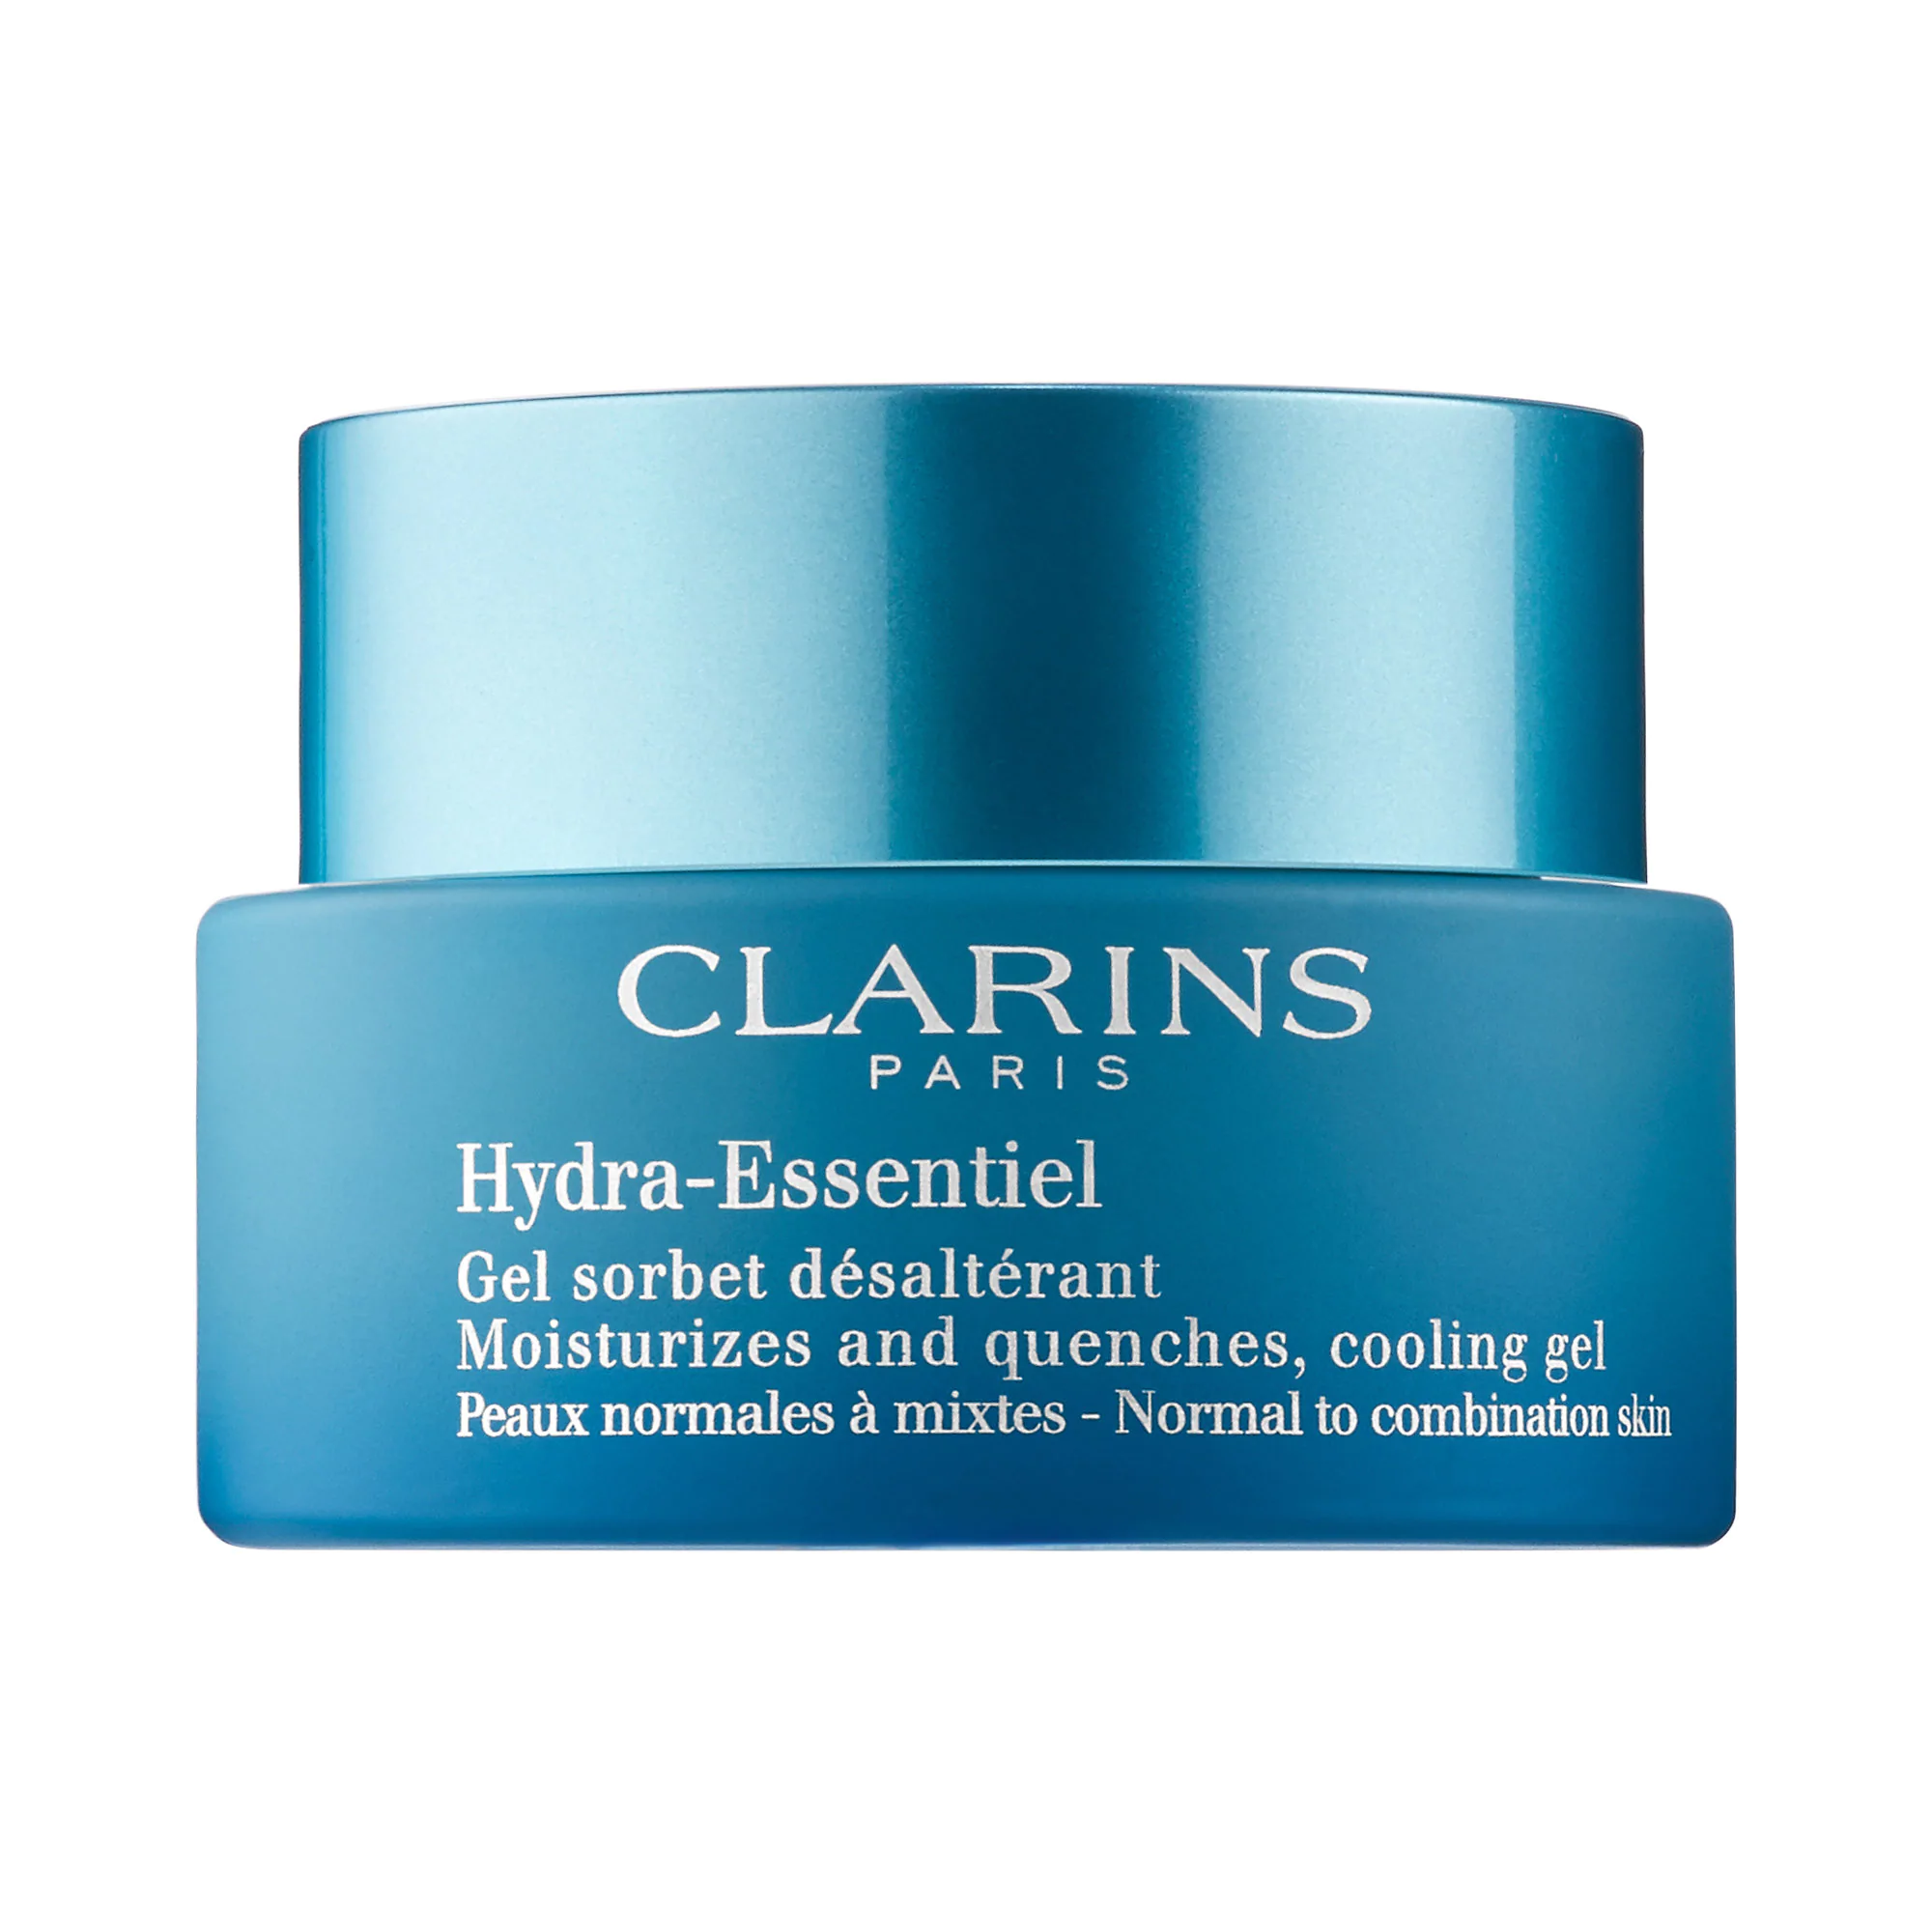 Clarins-Hydra-Essentiel Cooling Gel - Normal To Combination Skin